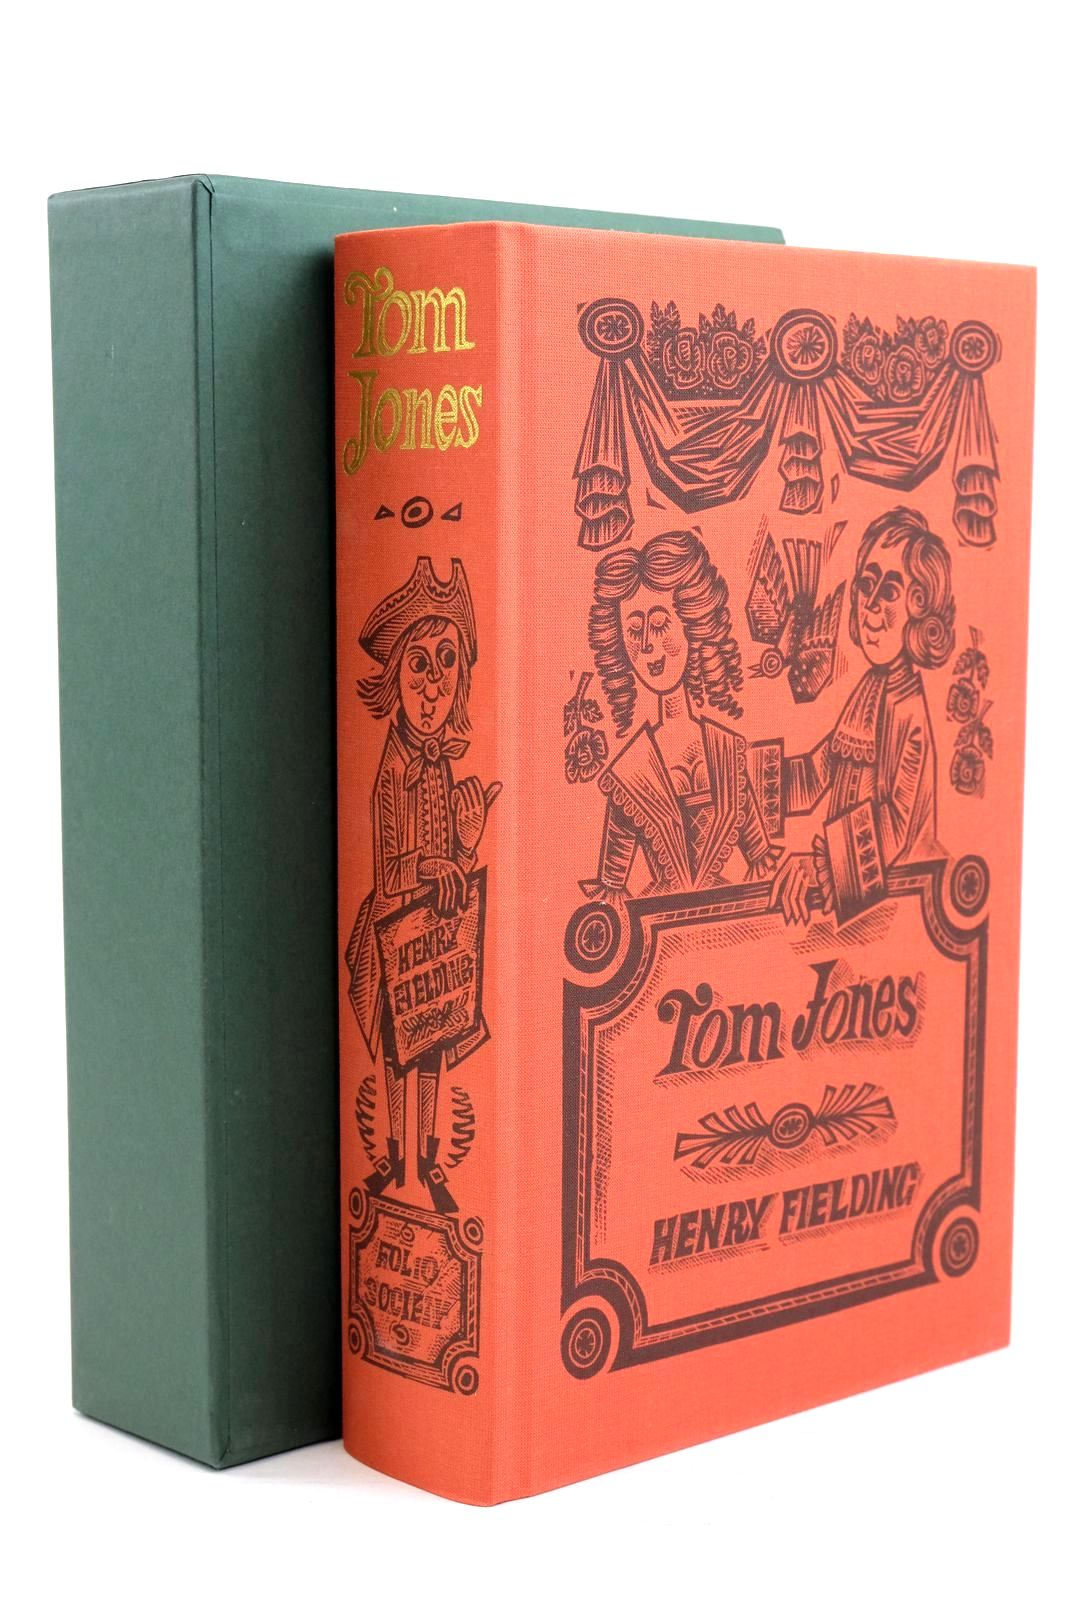 Photo of THE HISTORY OF TOM JONES written by Fielding, Henry illustrated by Harris, Derrick published by Folio Society (STOCK CODE: 1320845)  for sale by Stella & Rose's Books